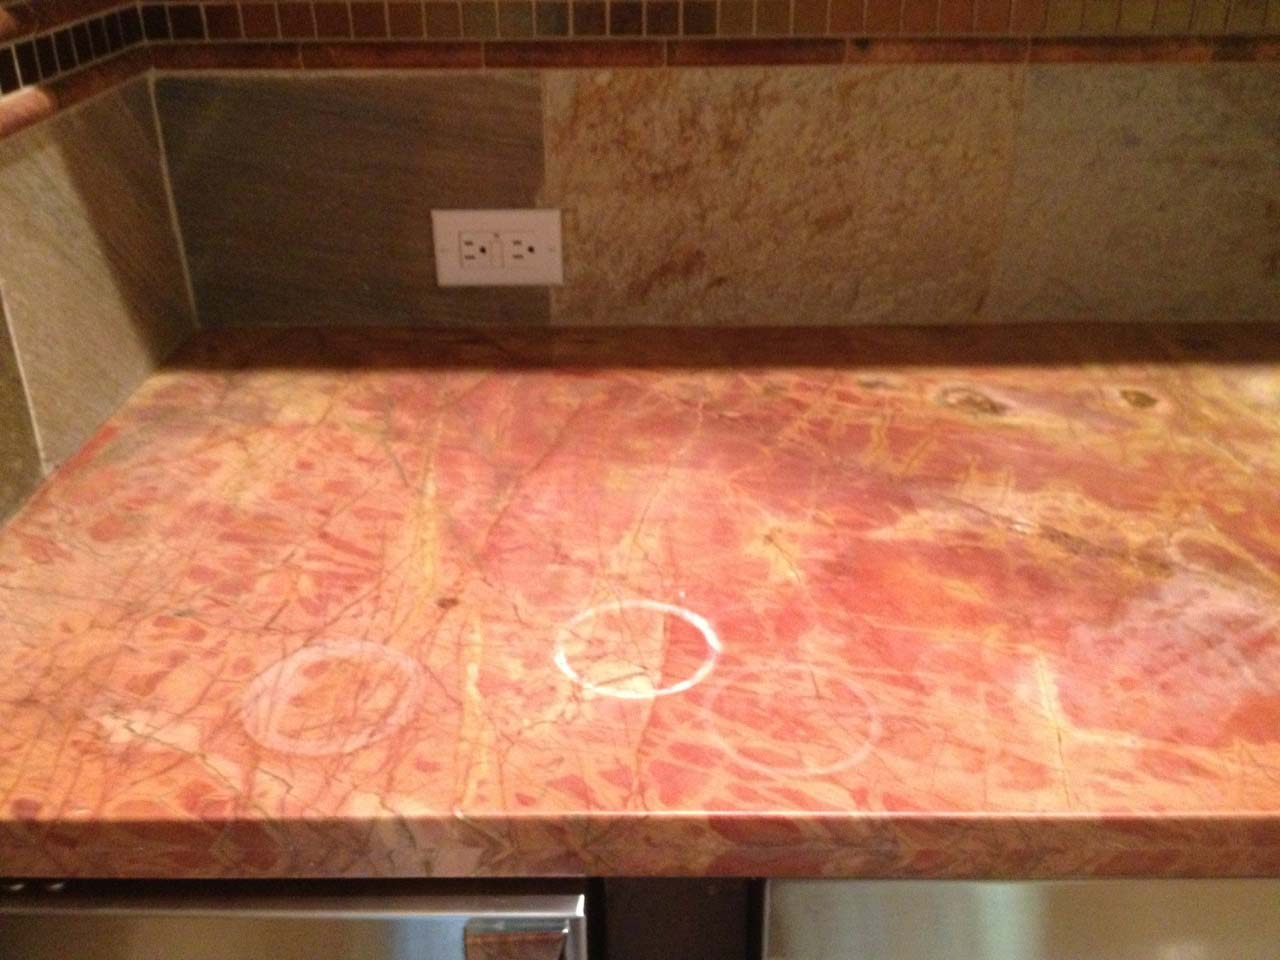 How To Remove Stains From Bathroom Countertops Etch Remover For Correcting Dull Spots On Marble And